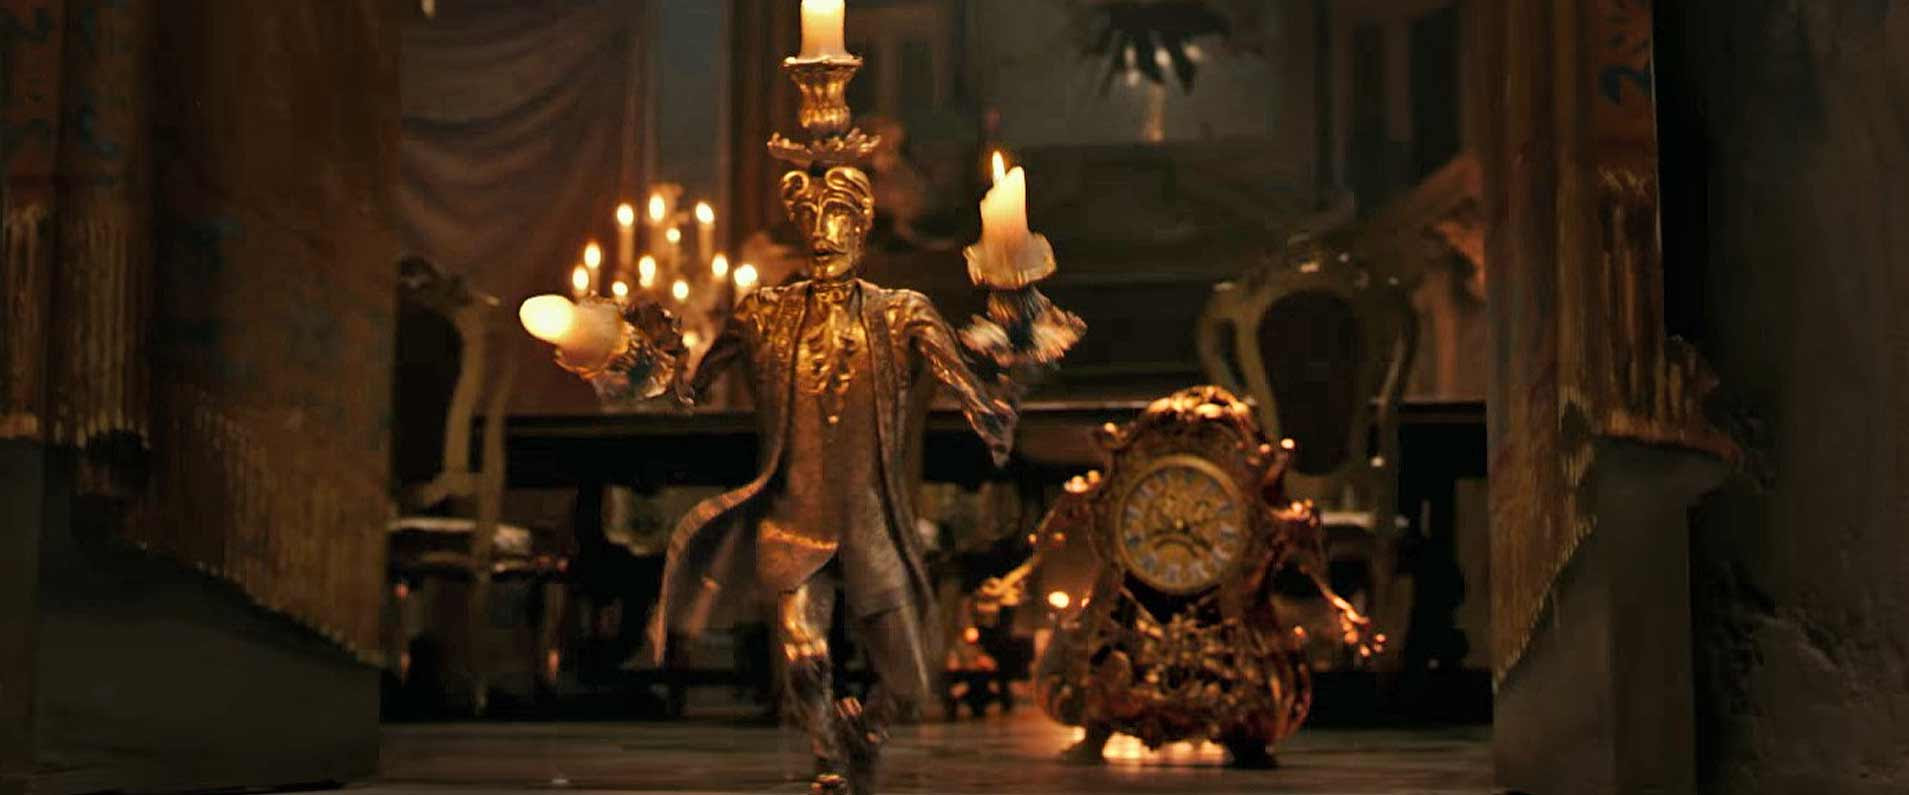 VIDEO: Lumiere  Cogsworth meet Belle, prepare dinner in two more preview clips from Disneys